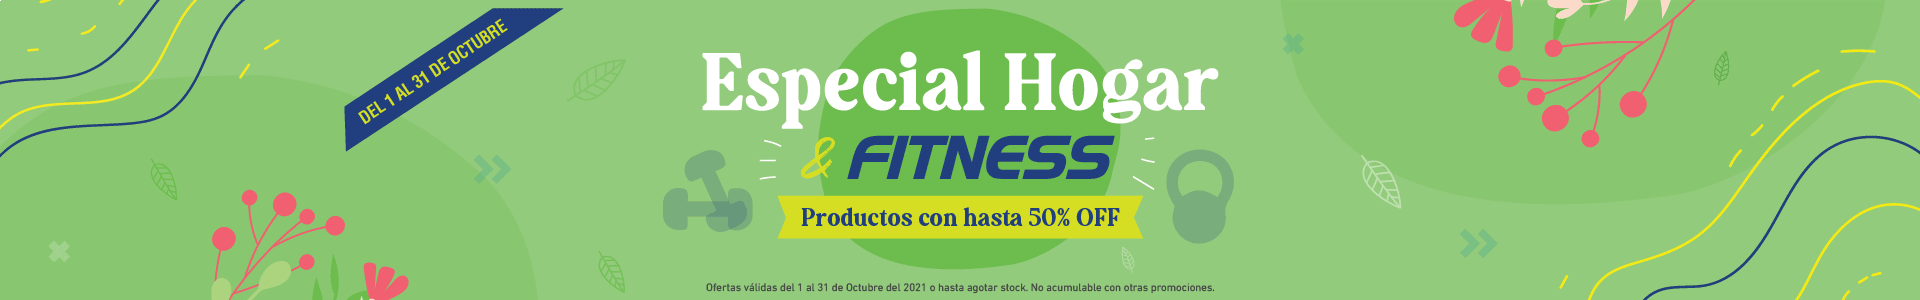 Fitness y aire libre